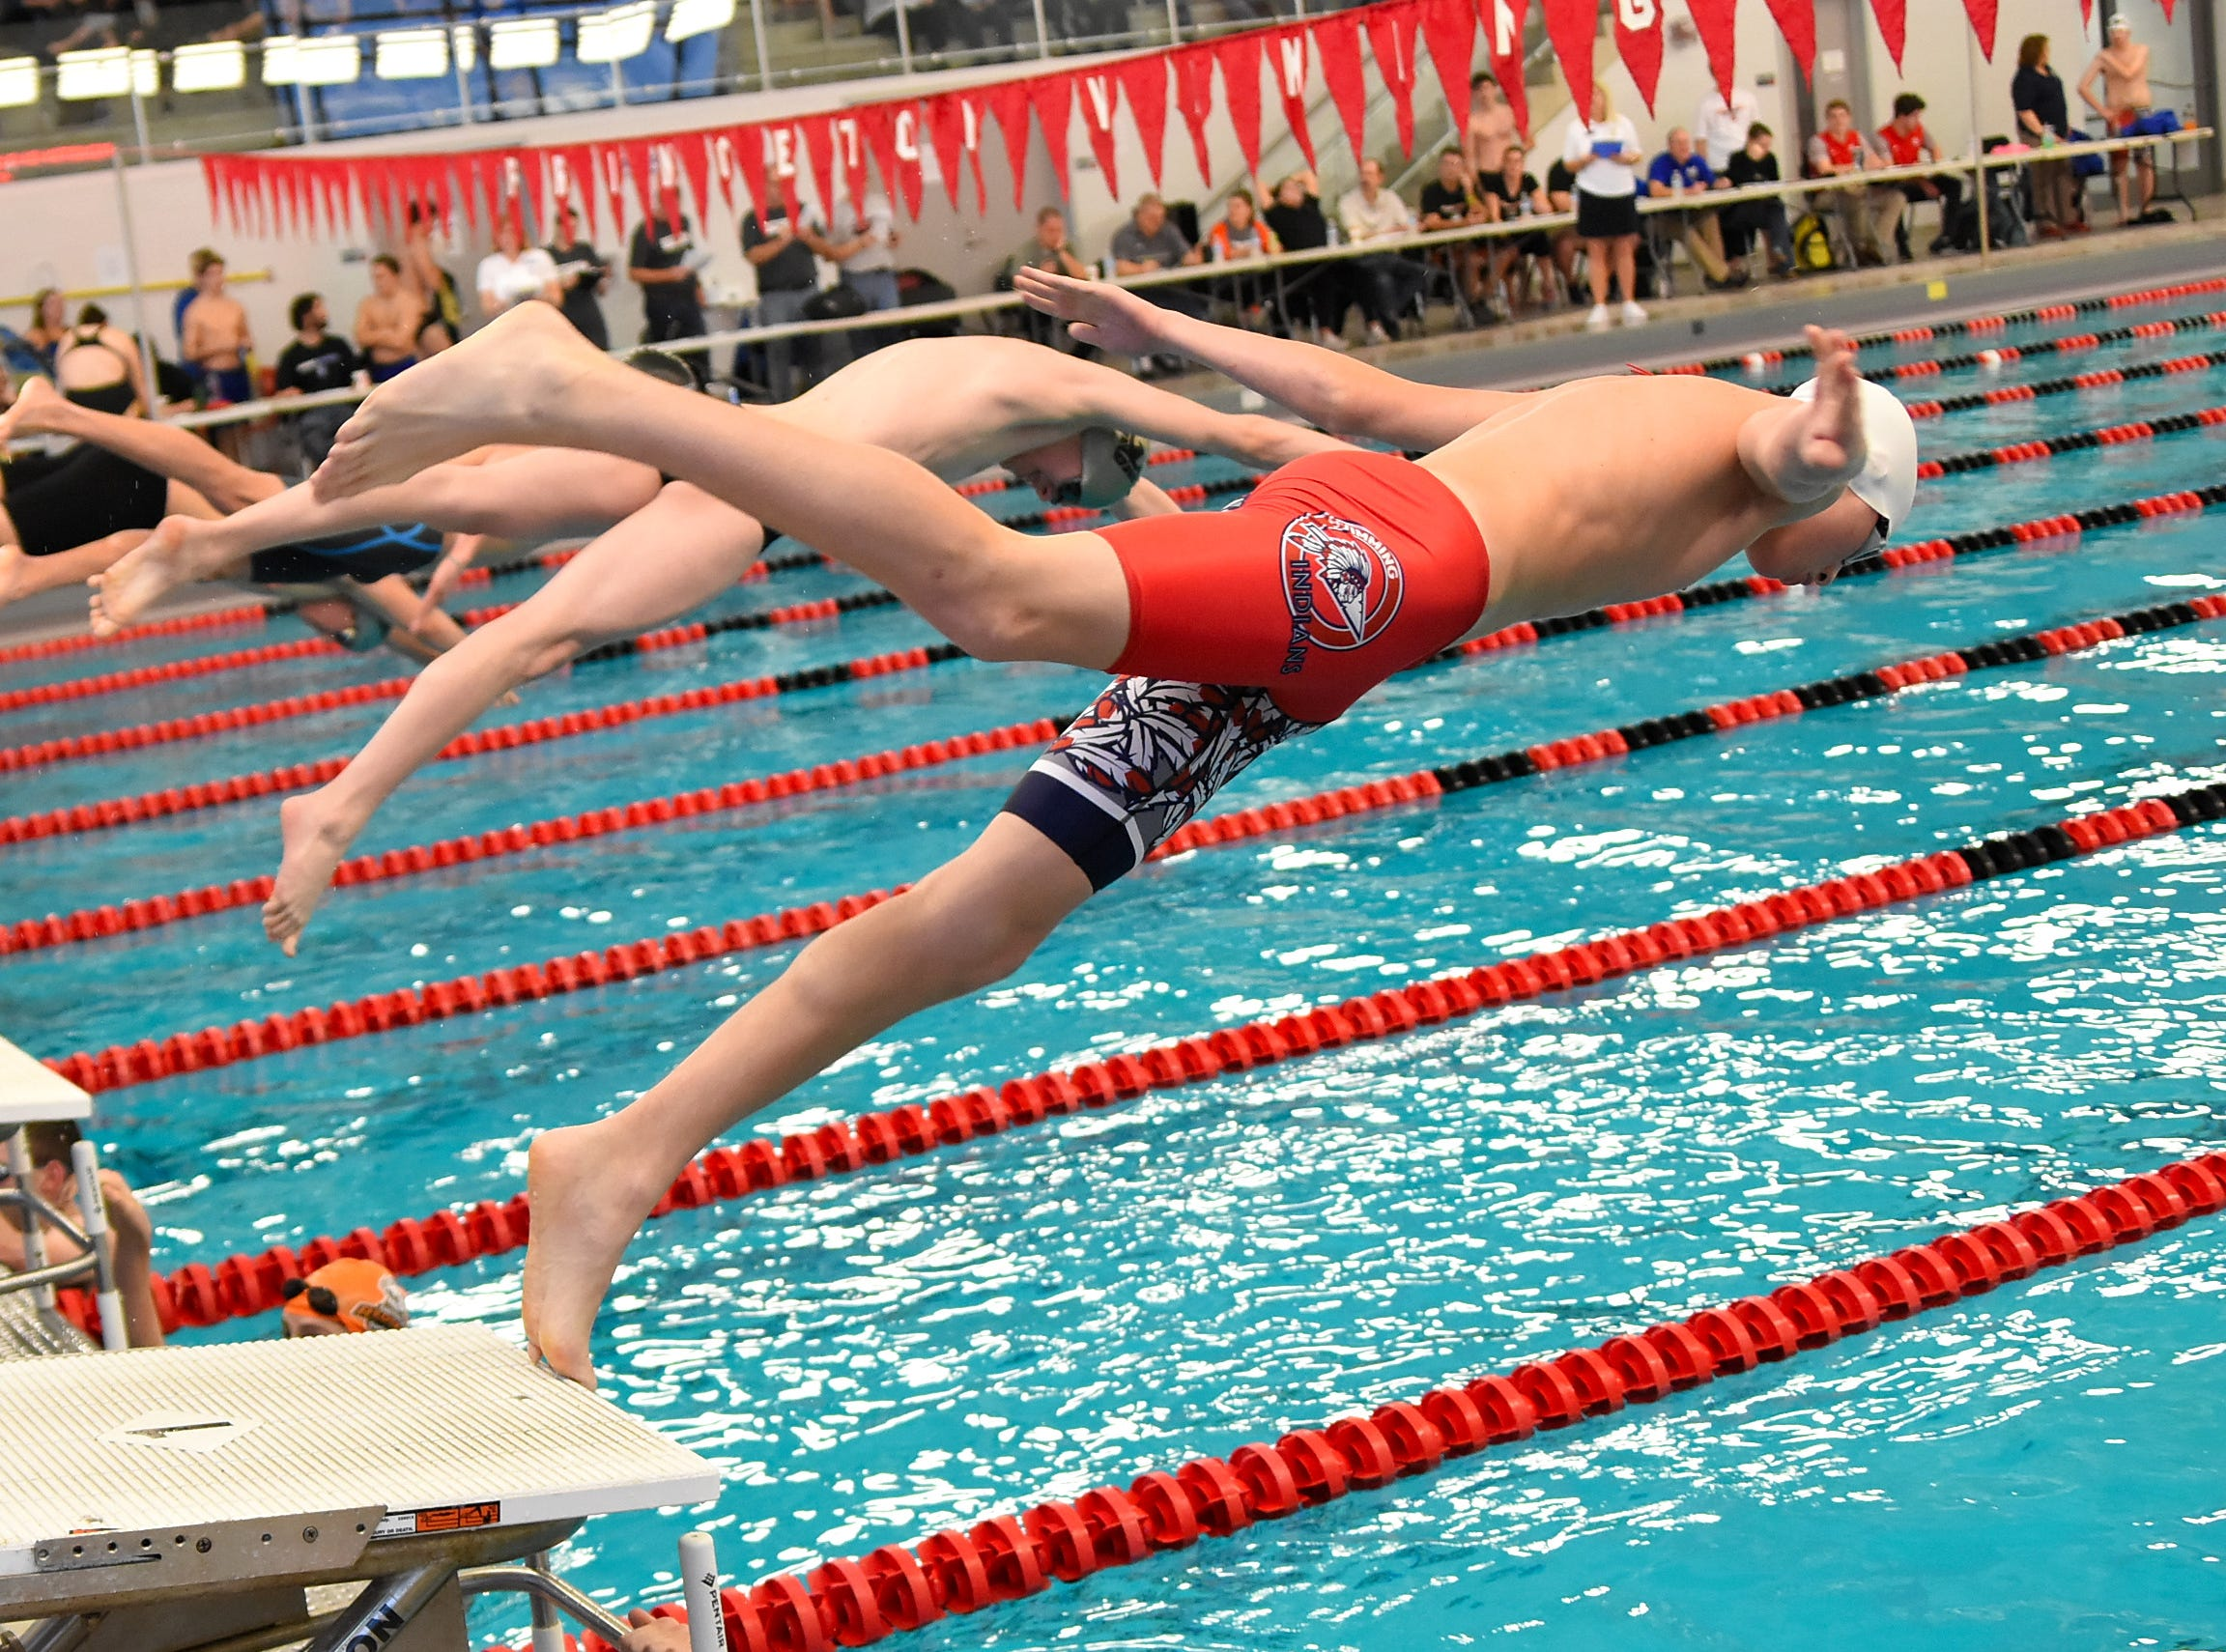 Elijah Partin of Norwood pushes off the platform to the pool in the boys 50 freestyle at the Southwest Ohio Swimming and Diving Classic, January 19, 2019.